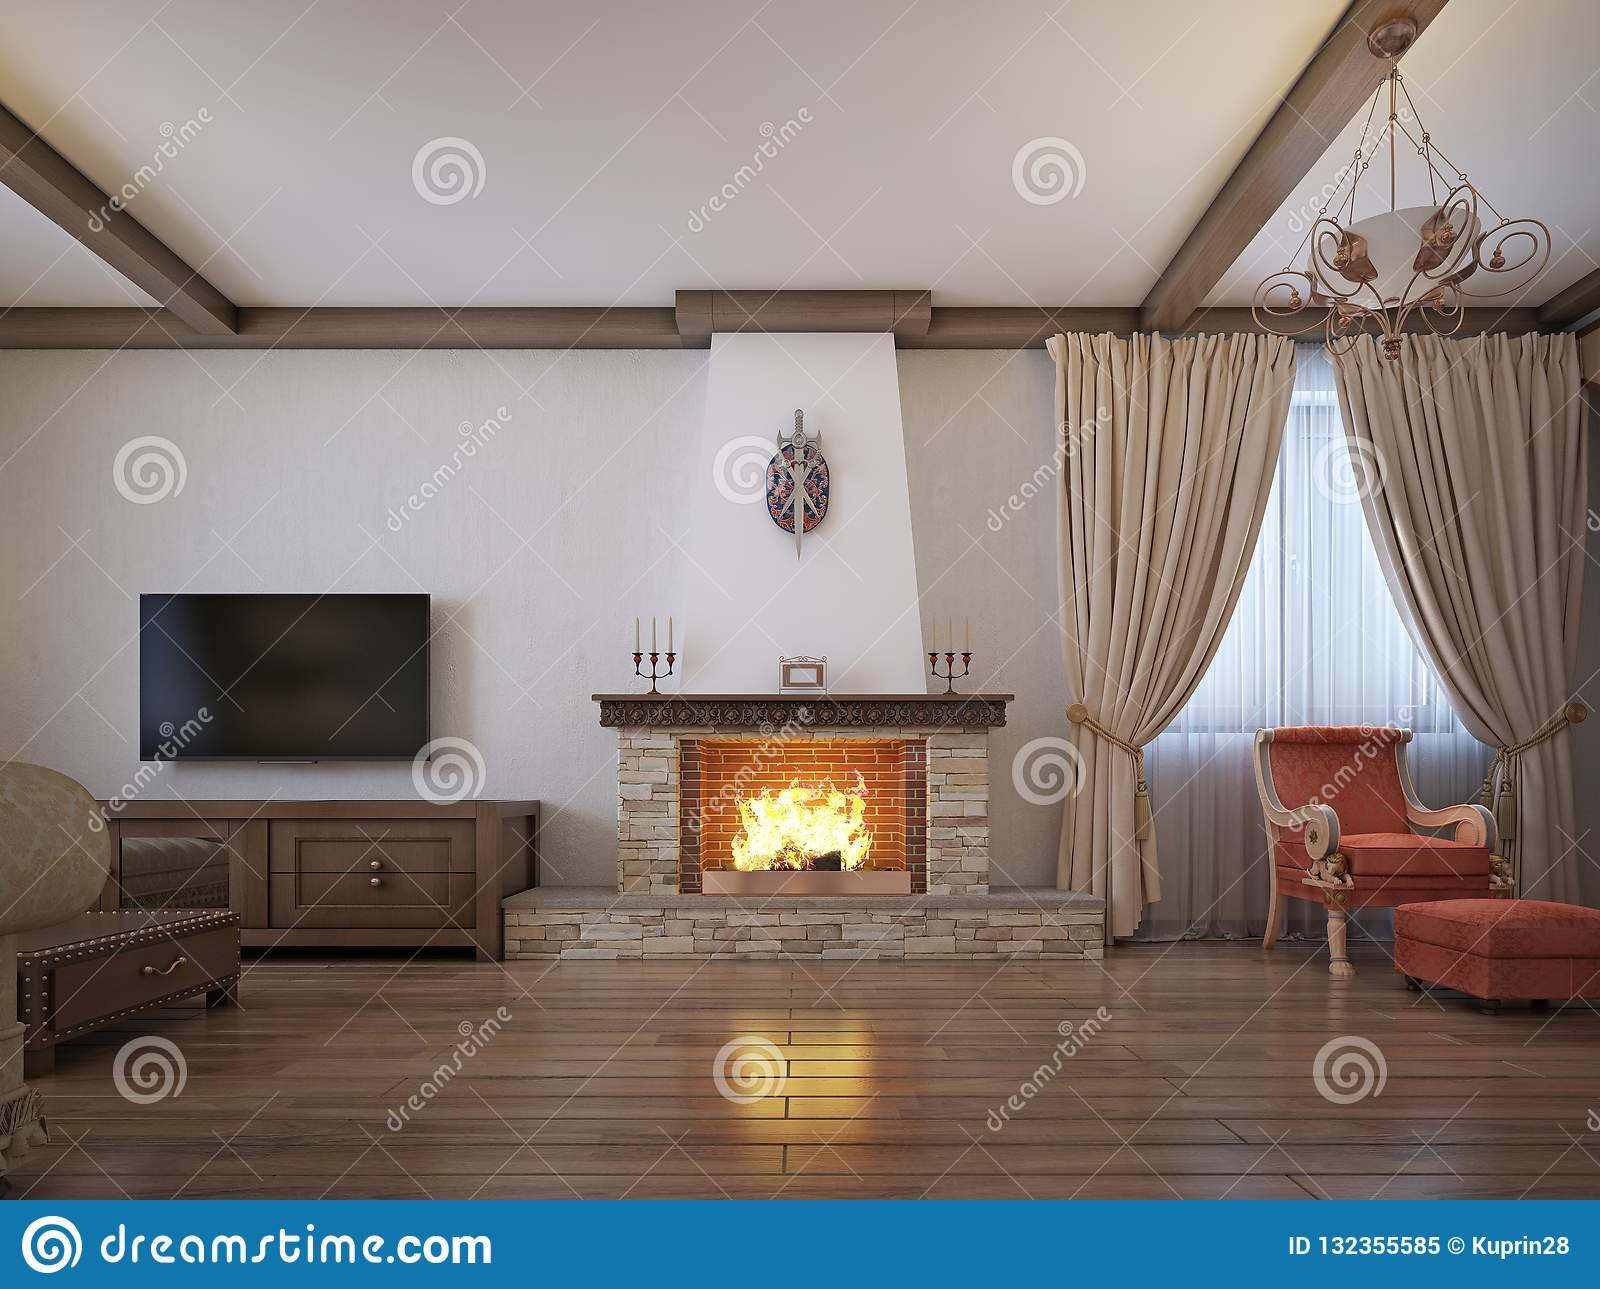 Rustic Style Living Room.Living Room In A Rustic Style With Soft Furniture And A